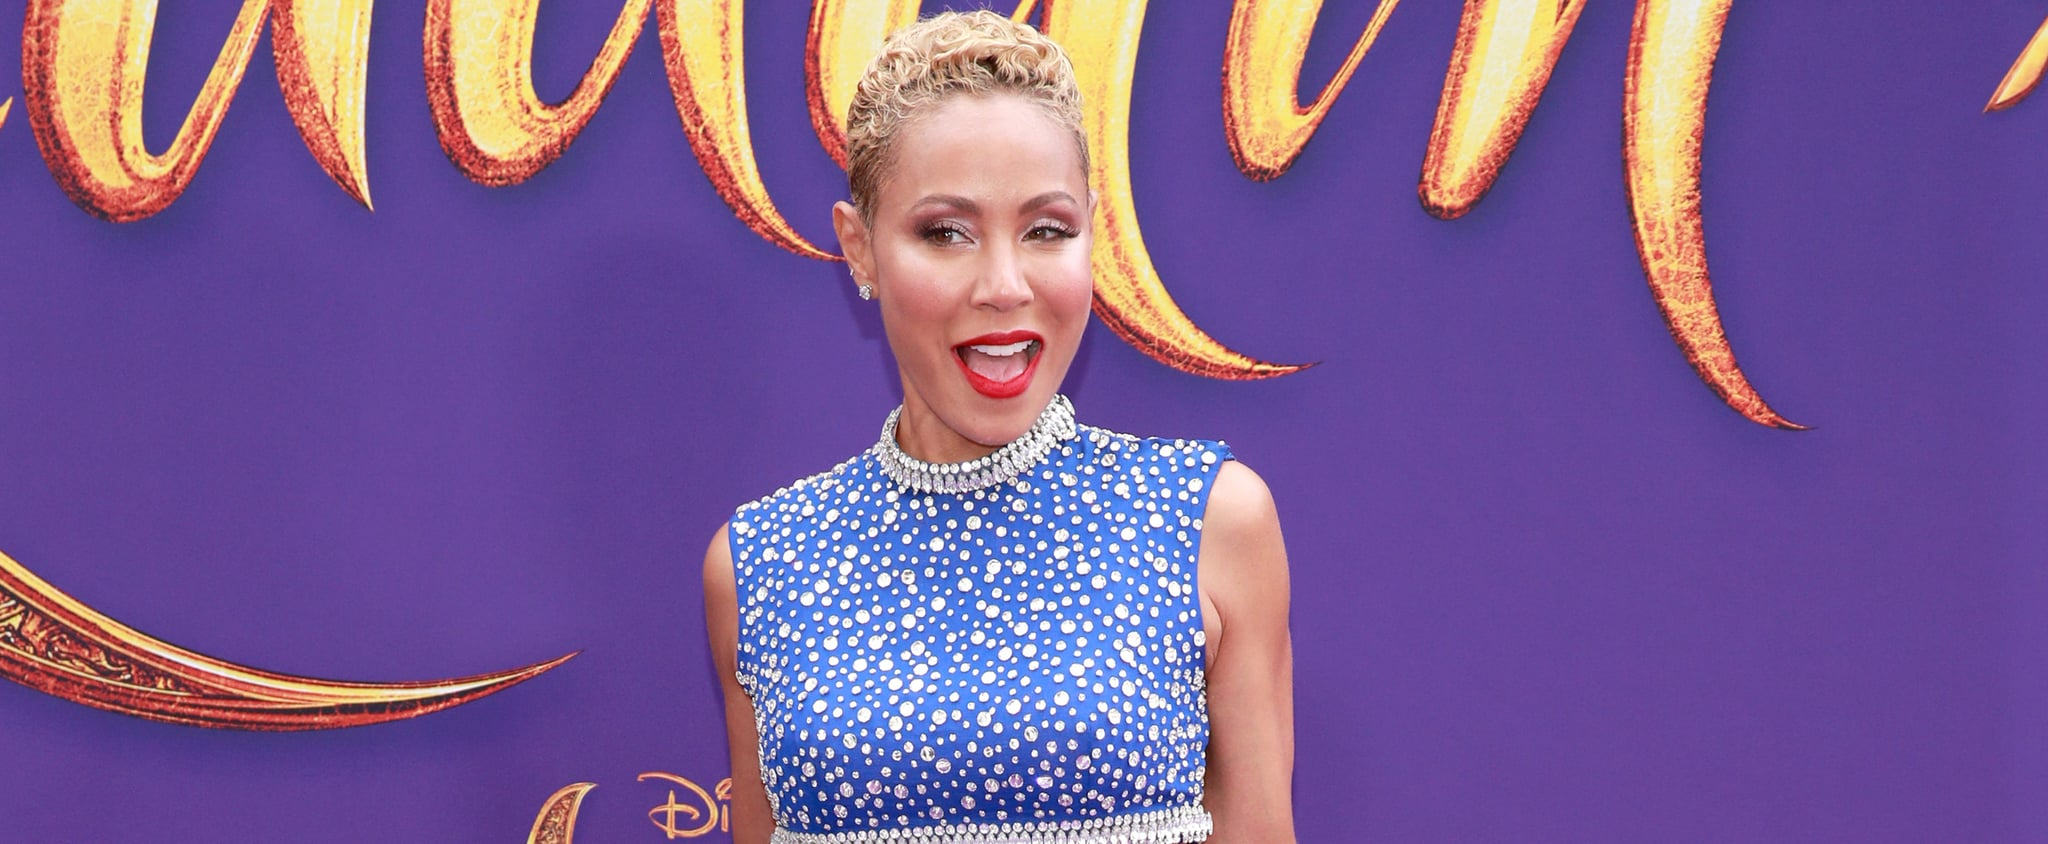 Jada Pinkett Smith's Genie Outfit at Aladdin Premiere